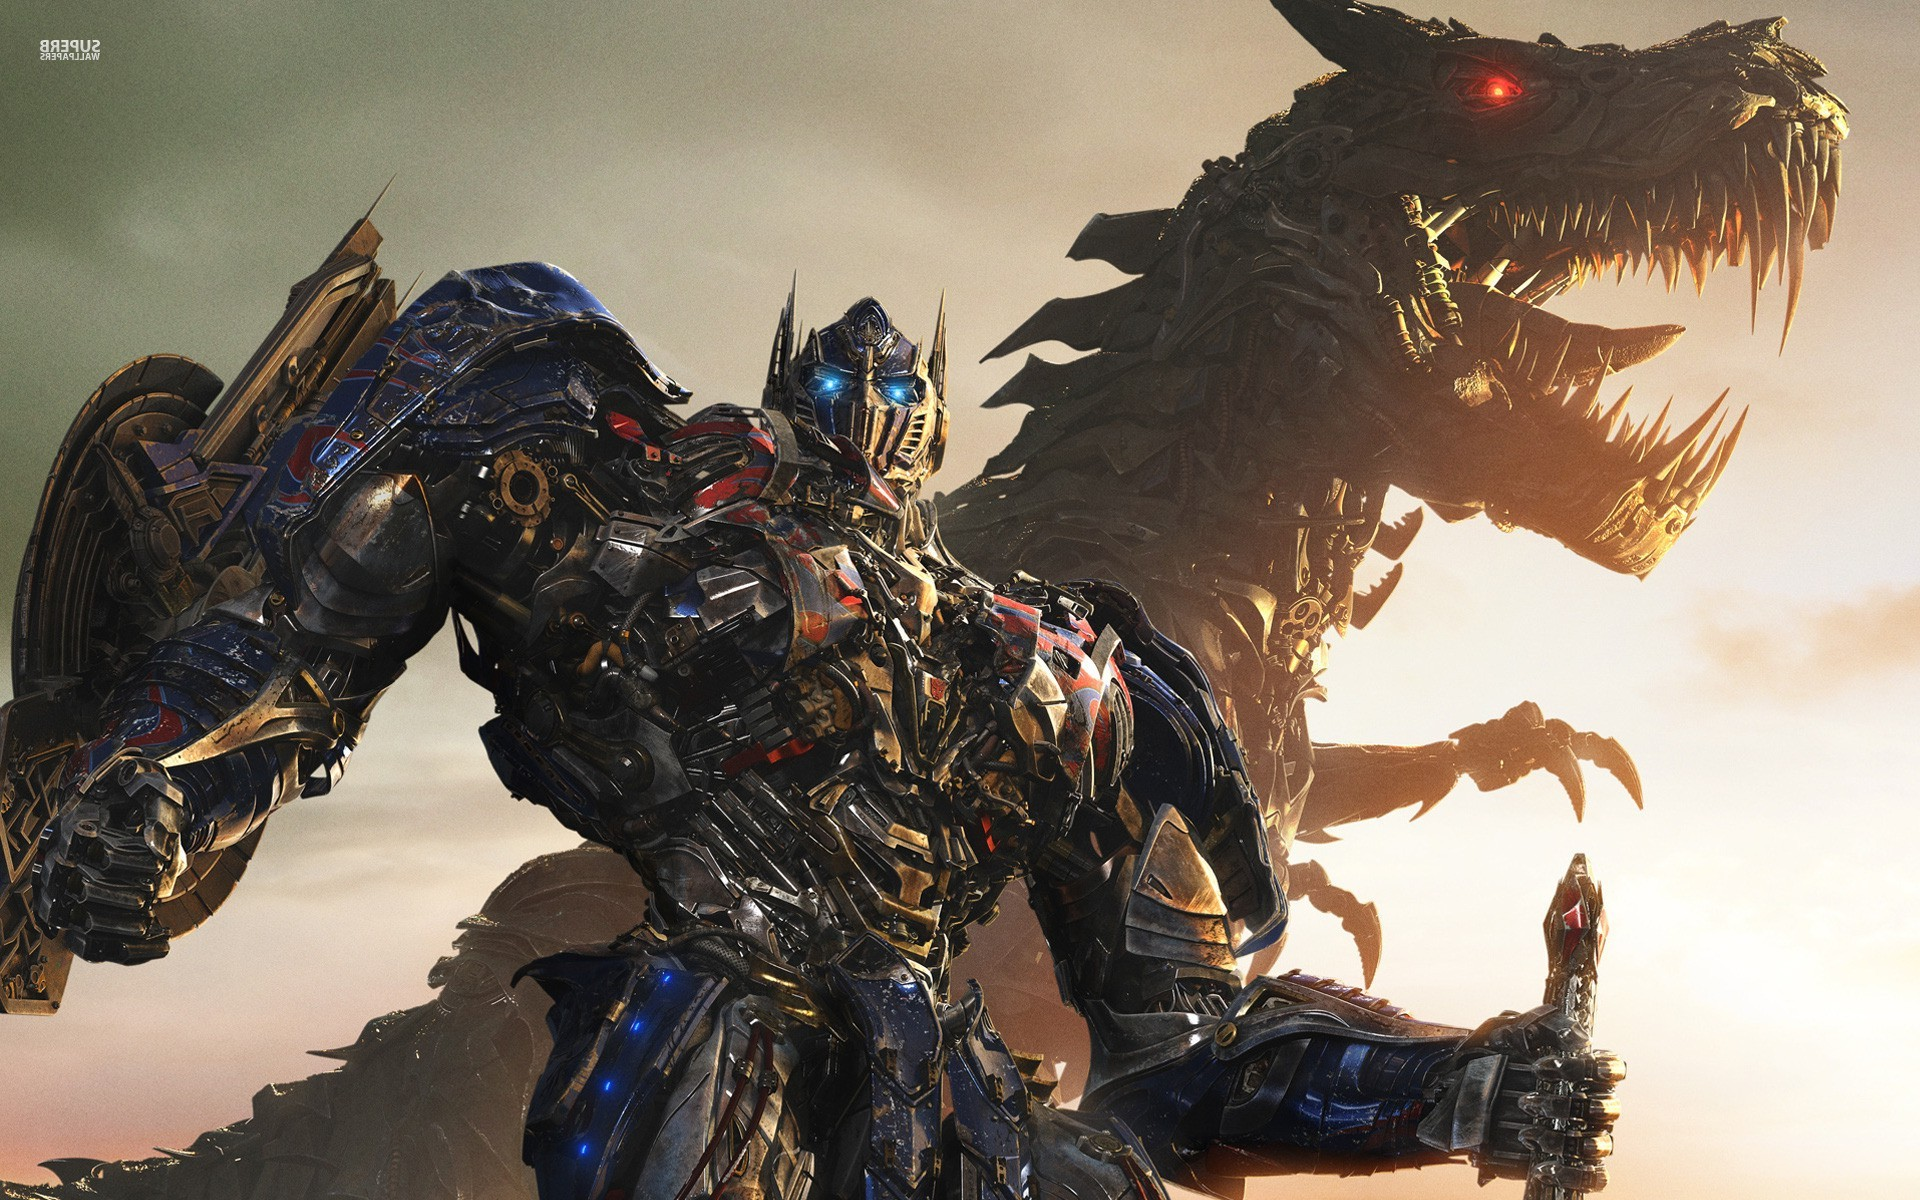 Transformers: Age Of Extinction, Transformers, Movies, Optimus 1920x1200